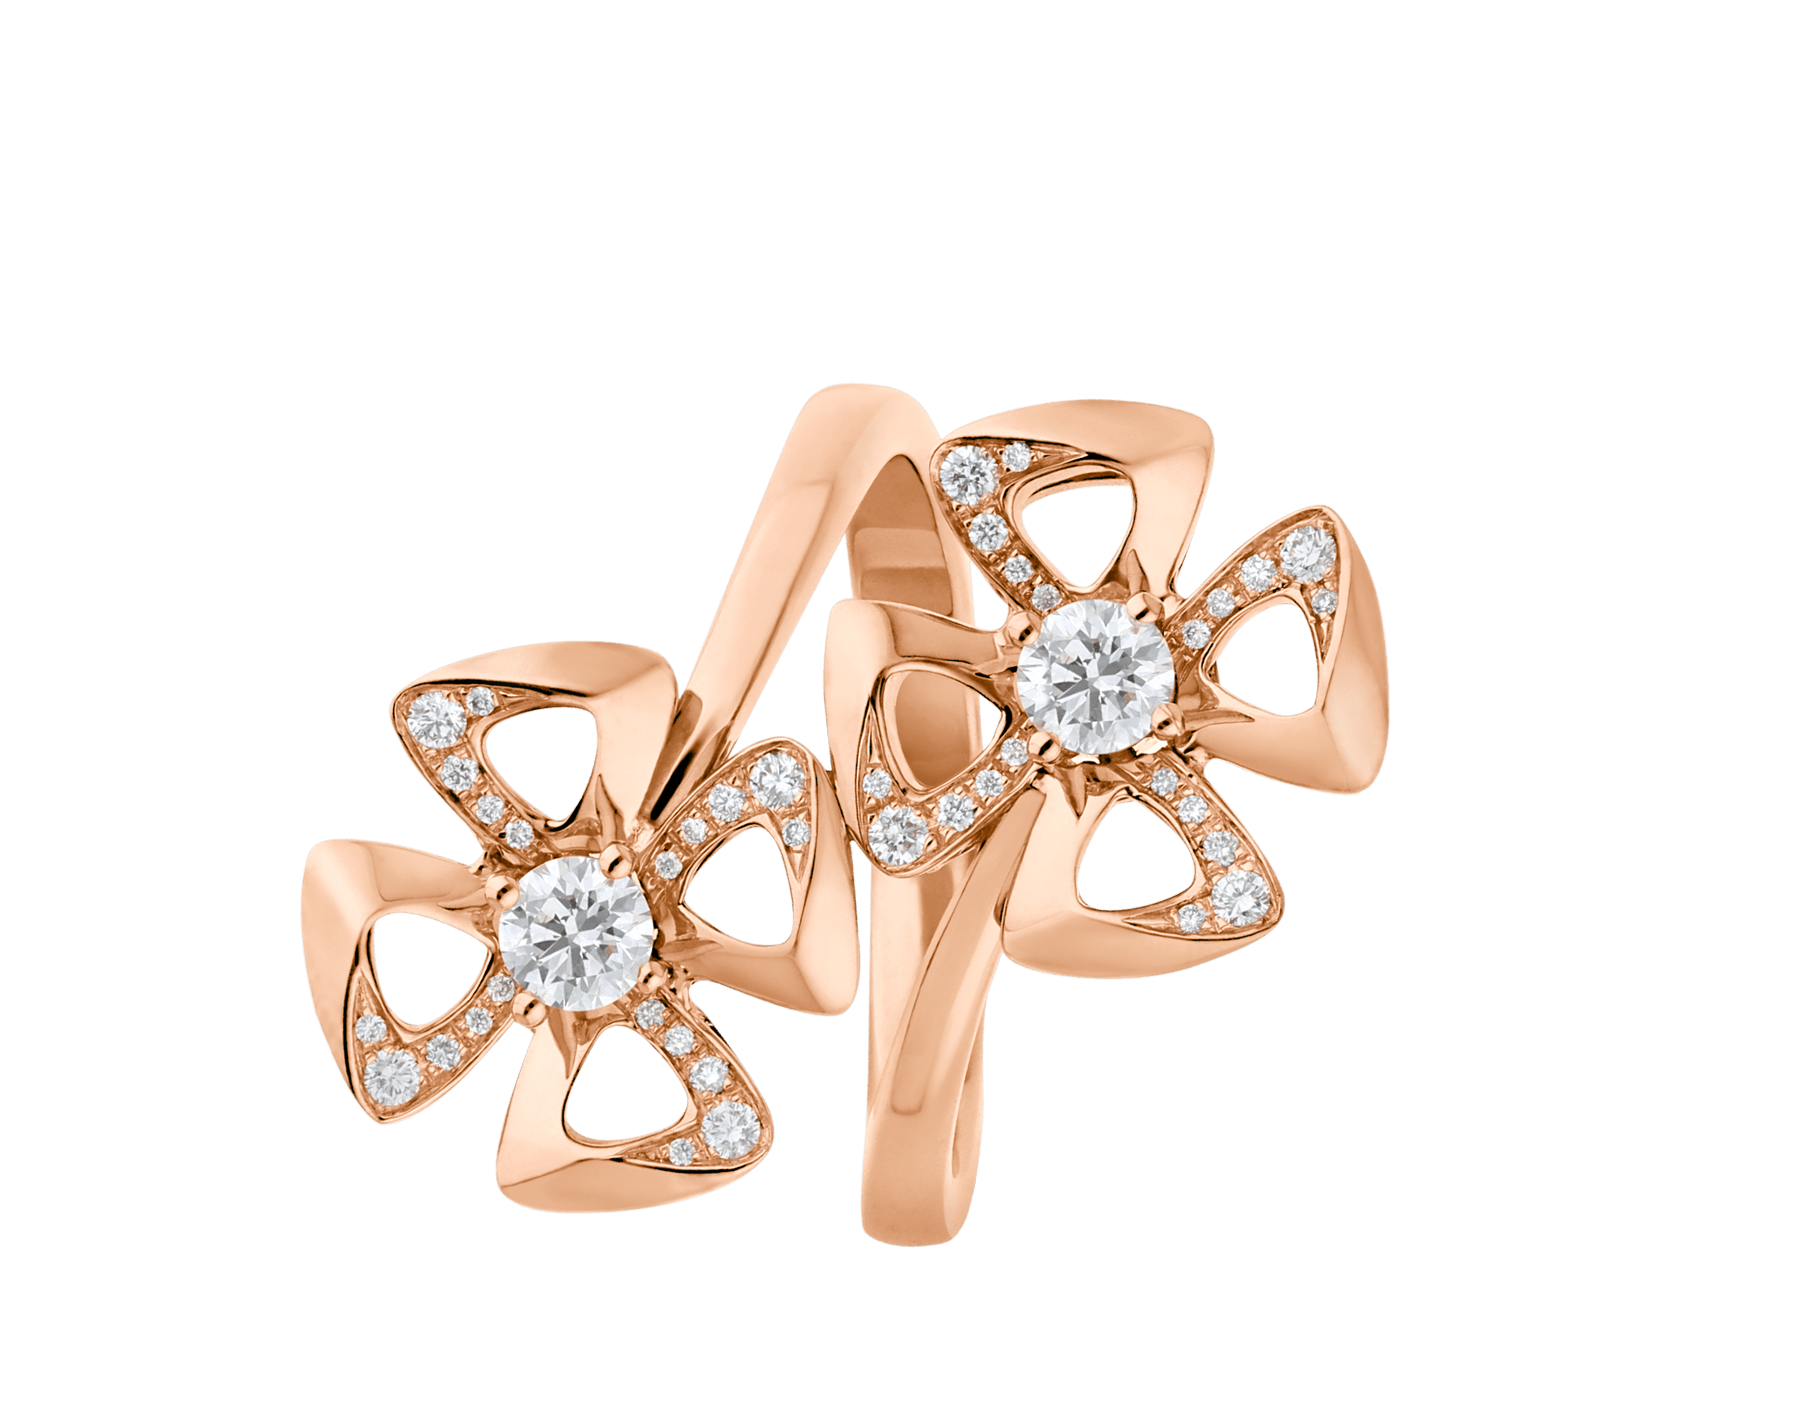 Fiorever 18 kt rose gold ring set with two round brilliant-cut diamonds and pavé diamonds. AN858753 image 2